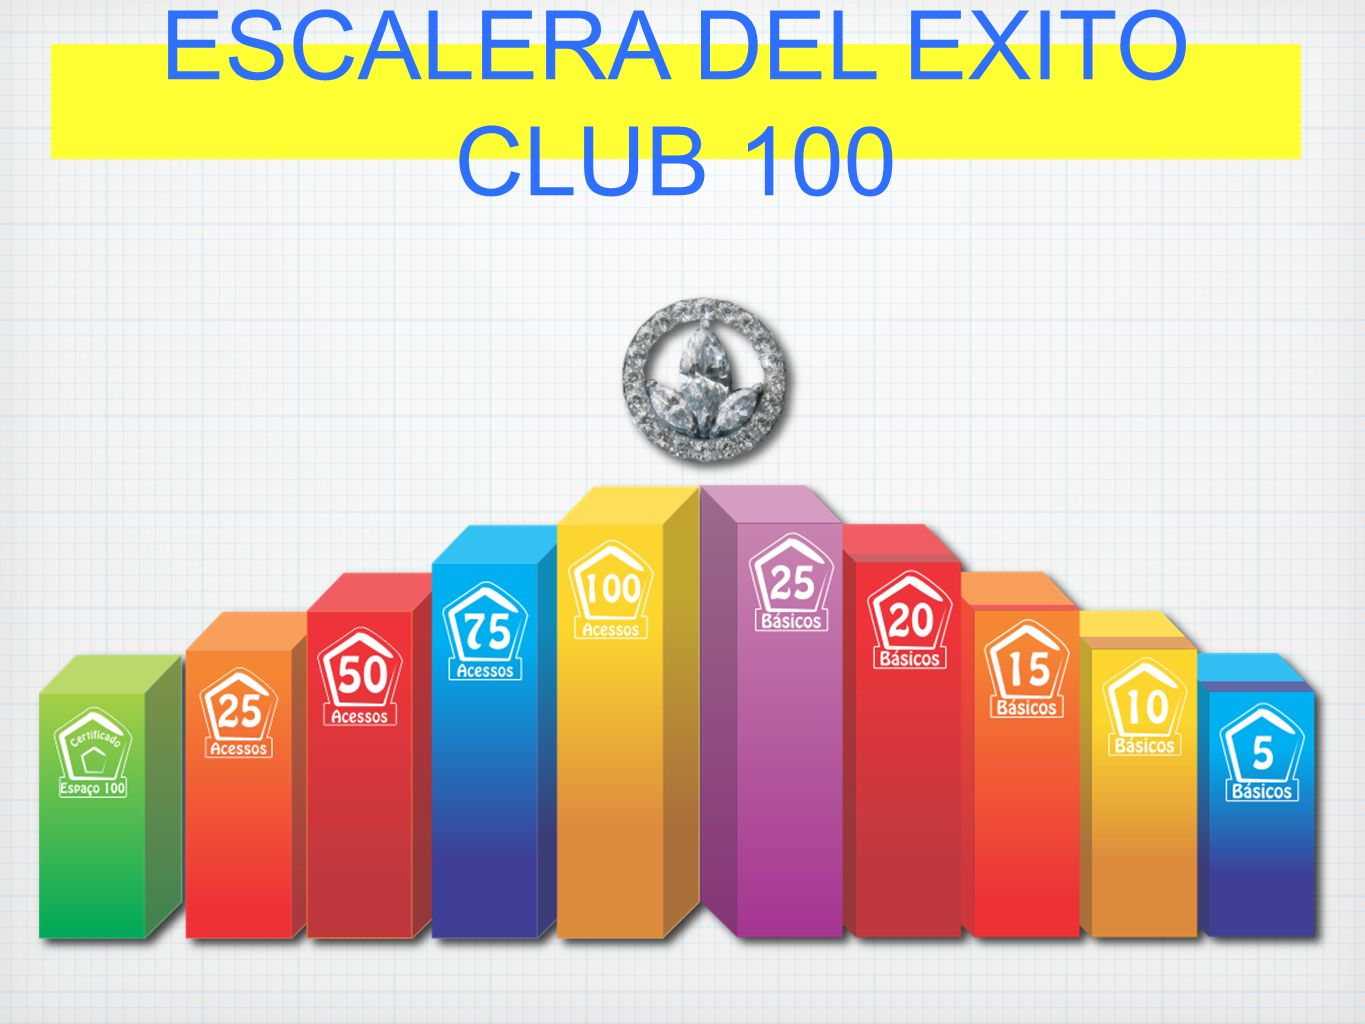 ESCALERA DEL EXITO CLUB 100